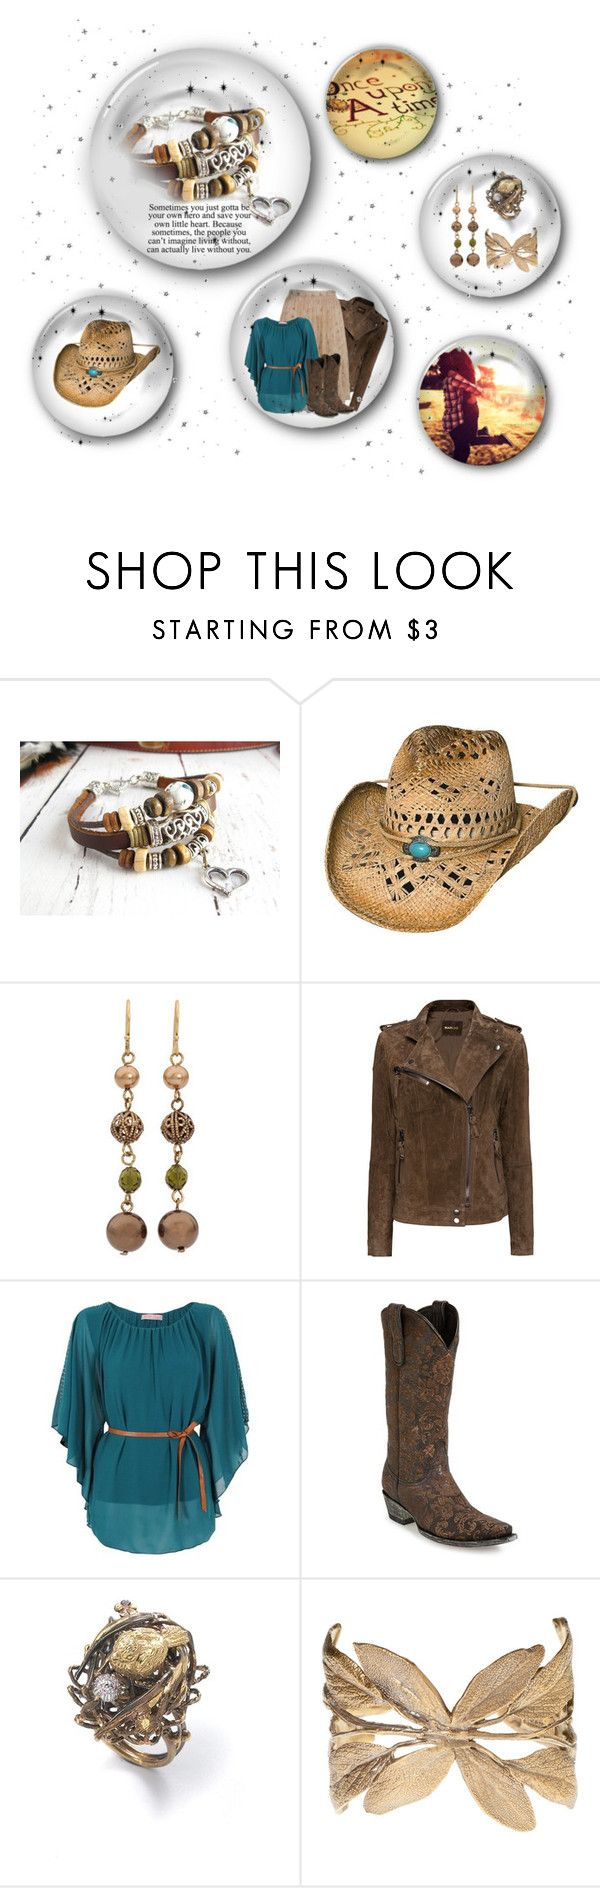 Save Your Heart by misspoppybird on Polyvore featuring MANGO, Old Gringo, Vernissage, Alkemie, Carolee, women's clothing, women's fashion, women, female and woman